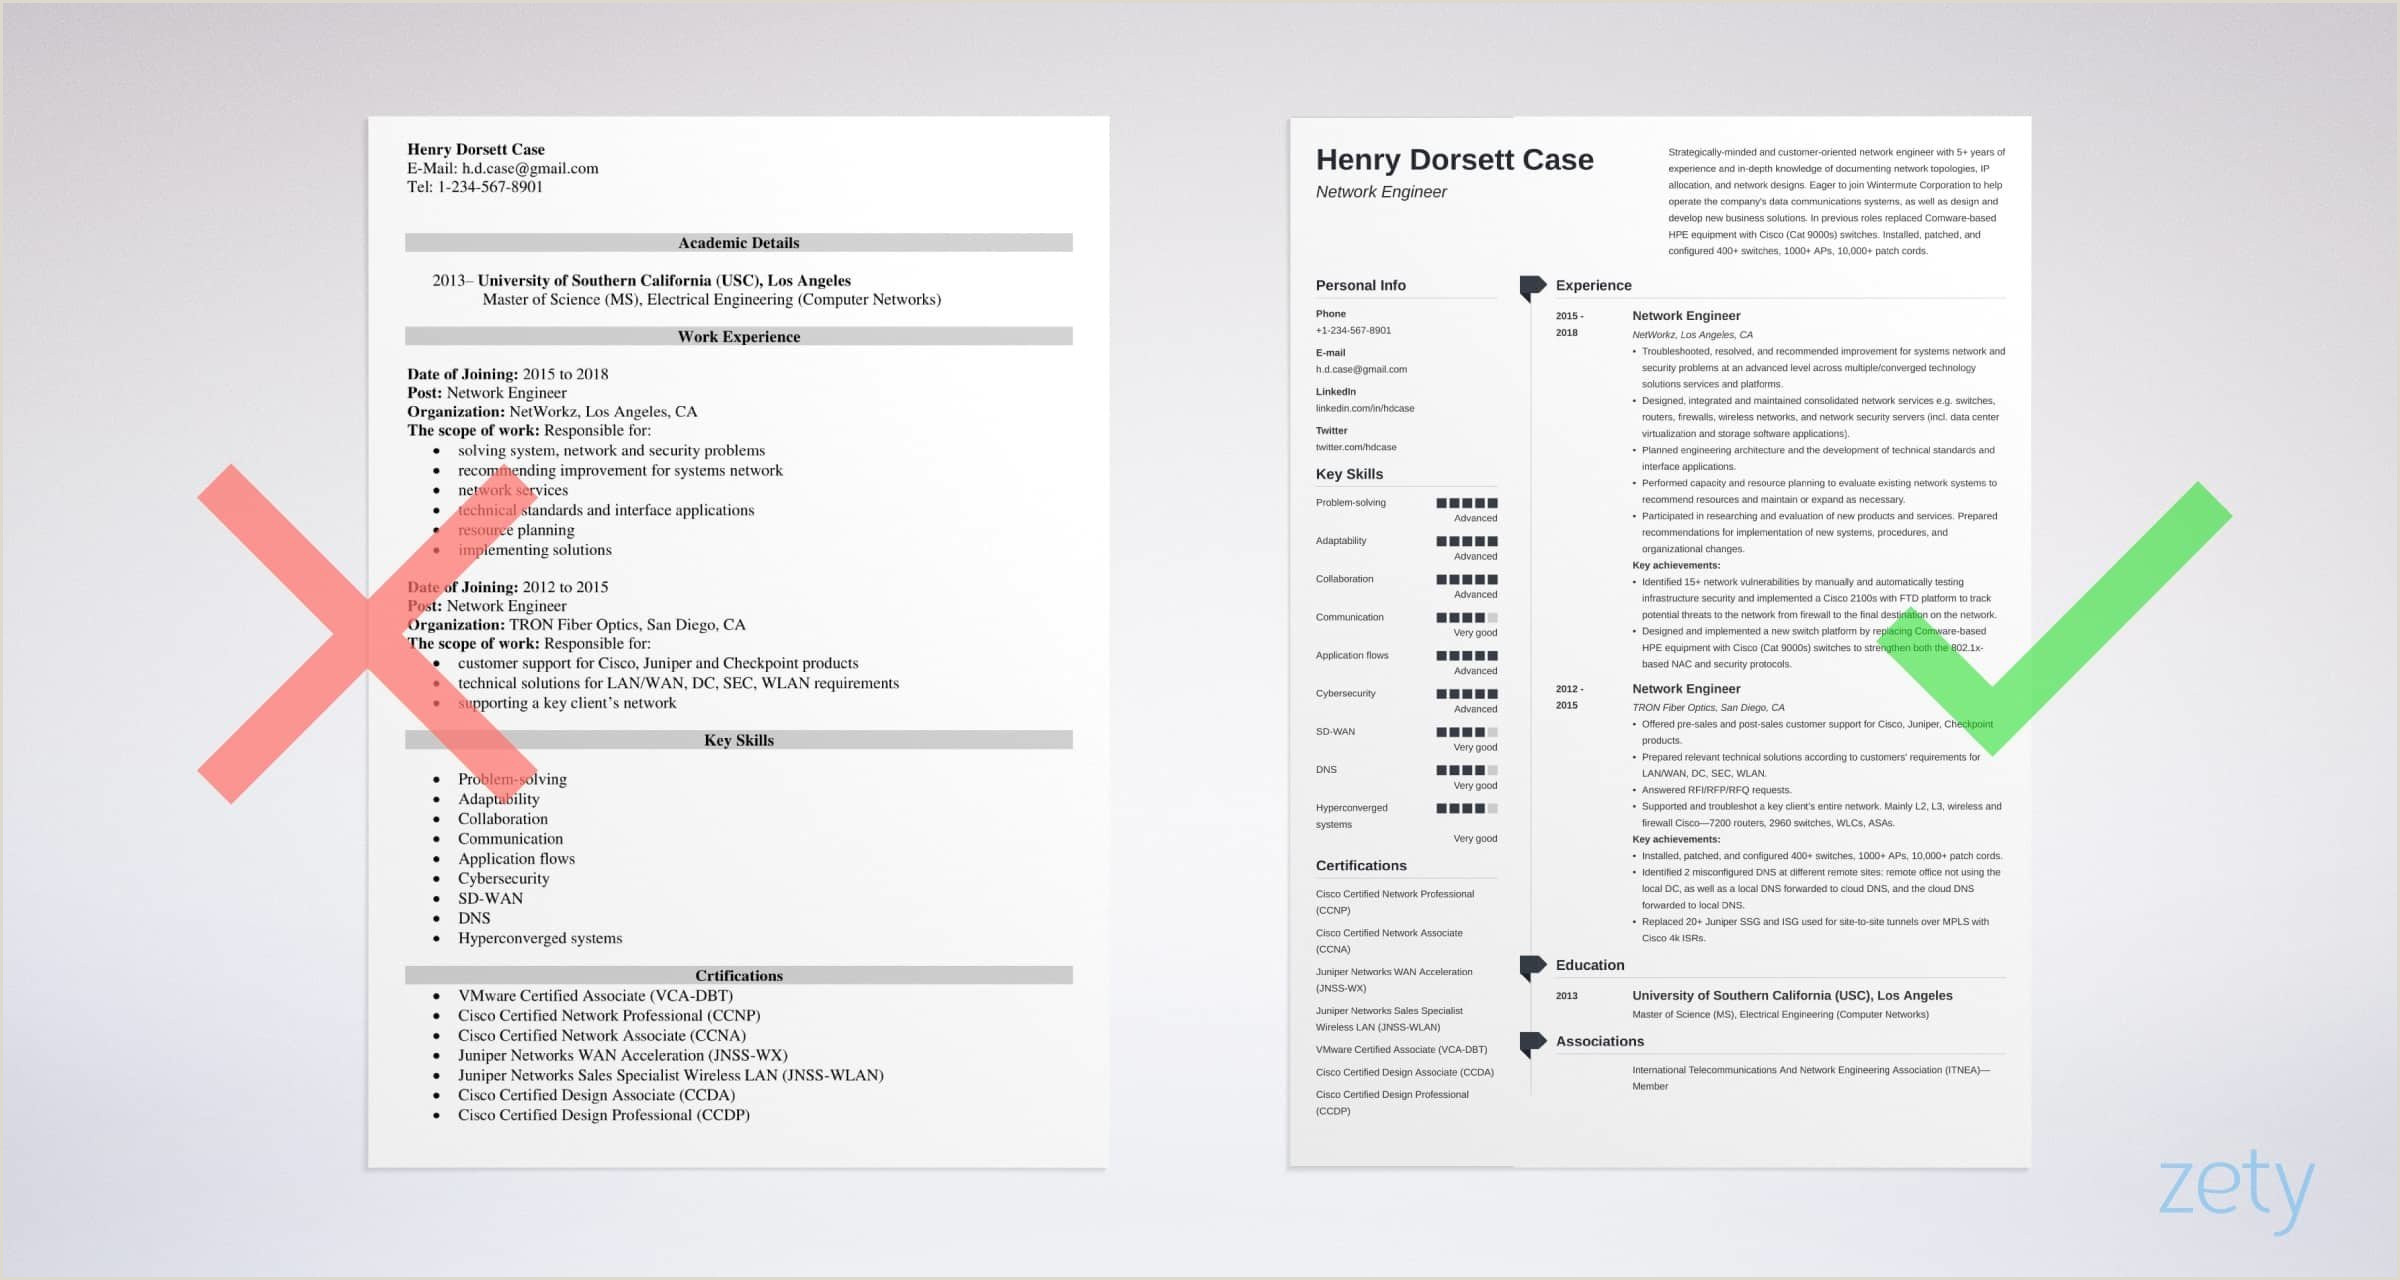 Cv format Of Fresher Electrical Engineer Network Engineer Resume Sample and Writing Guide [20 Examples]